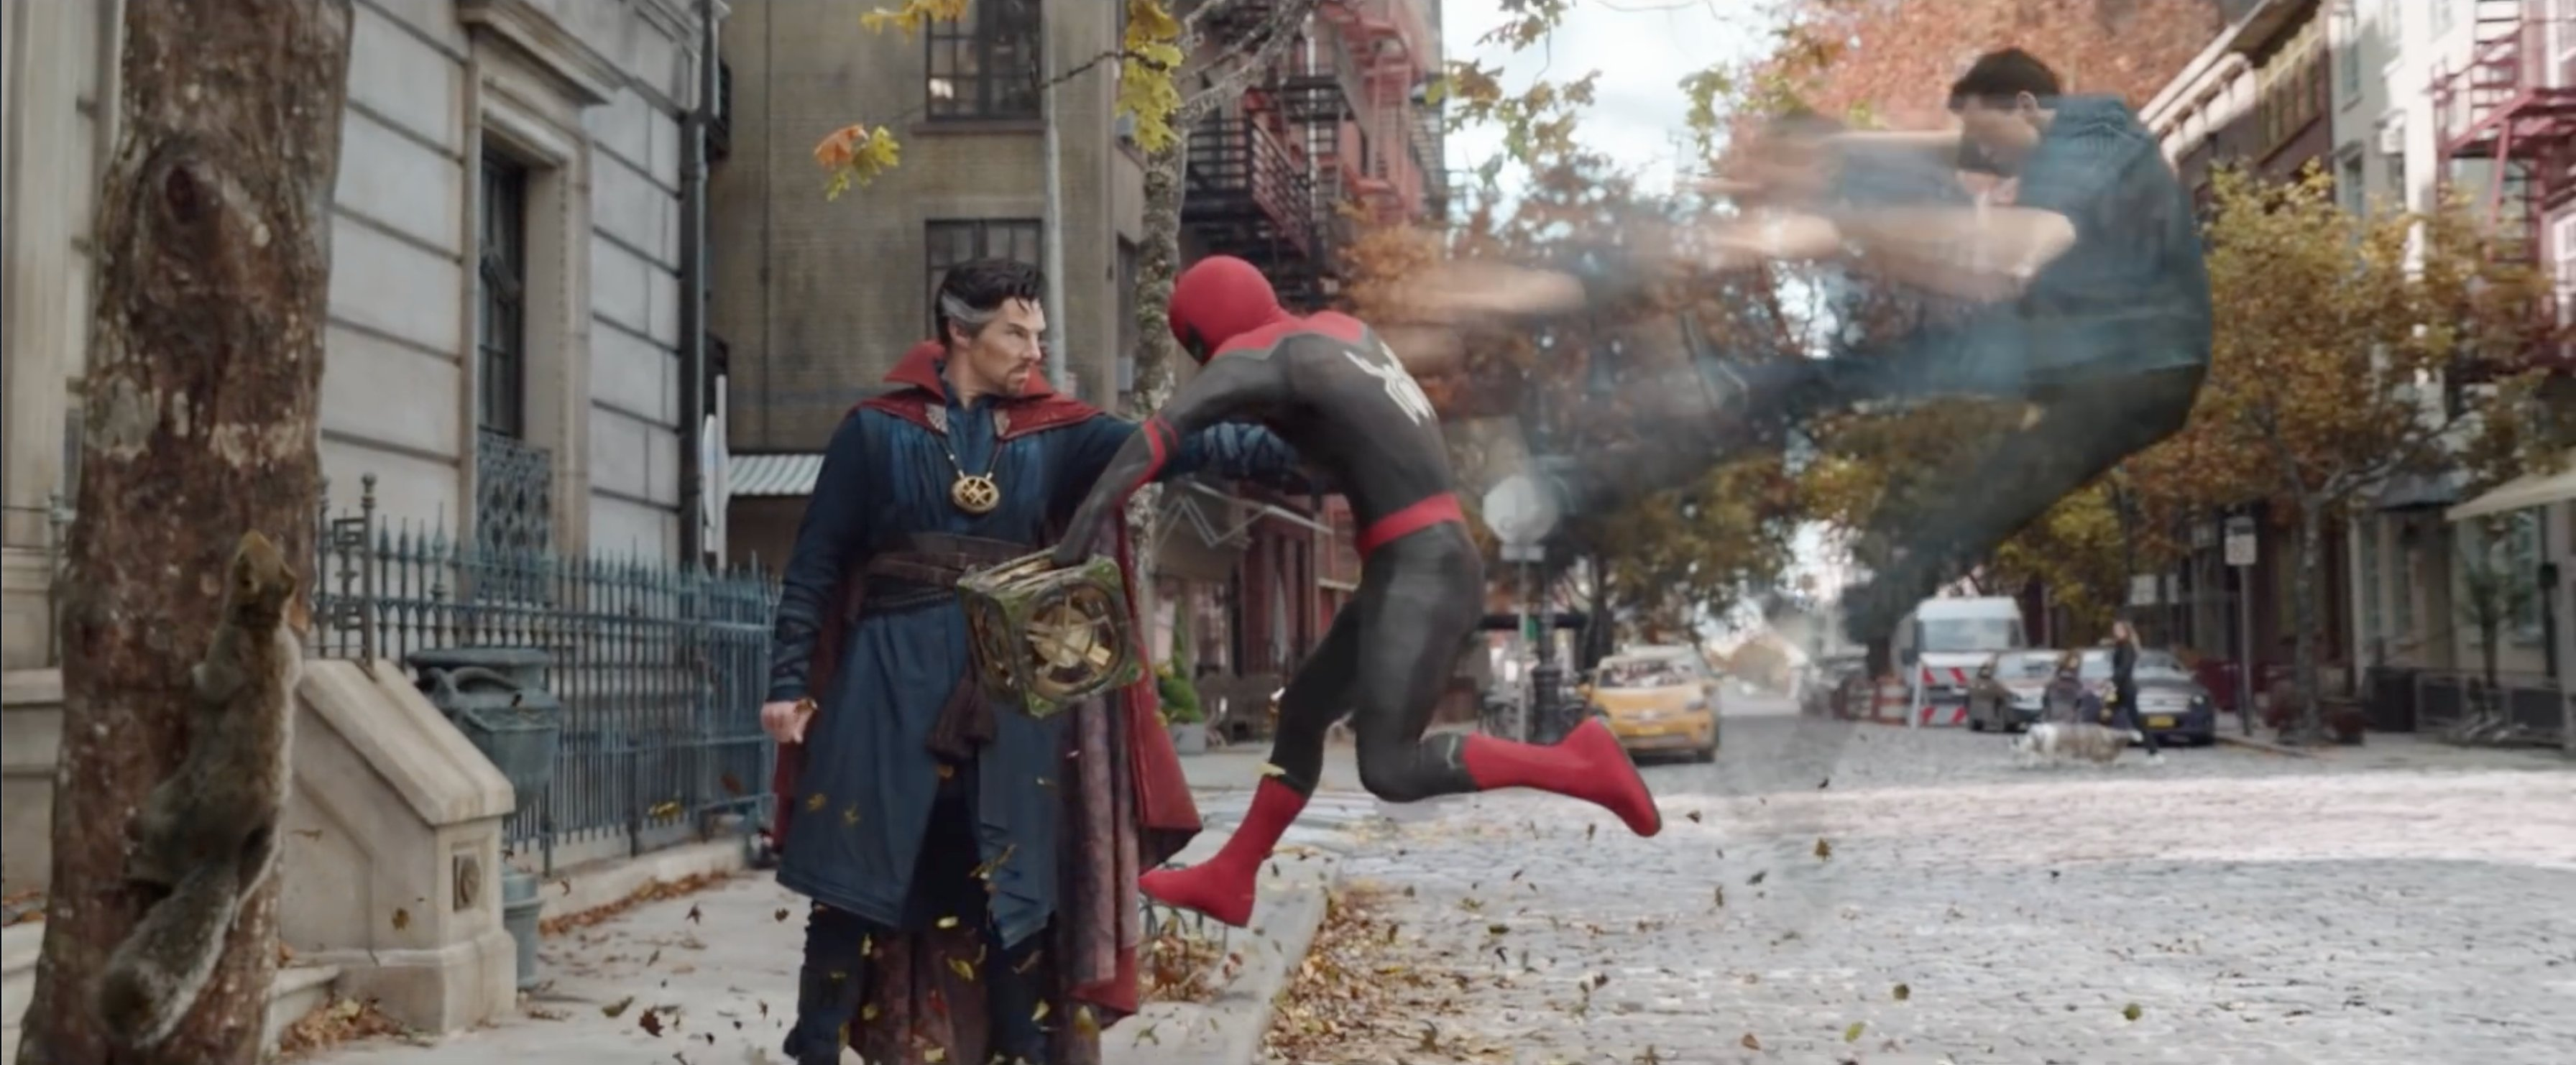 """Doctor Strange (Benedict Cumberbatch) on the left and Spider-Man (Tom Holland) on the right """"Spider-Man: No Path Home"""" (2021)"""